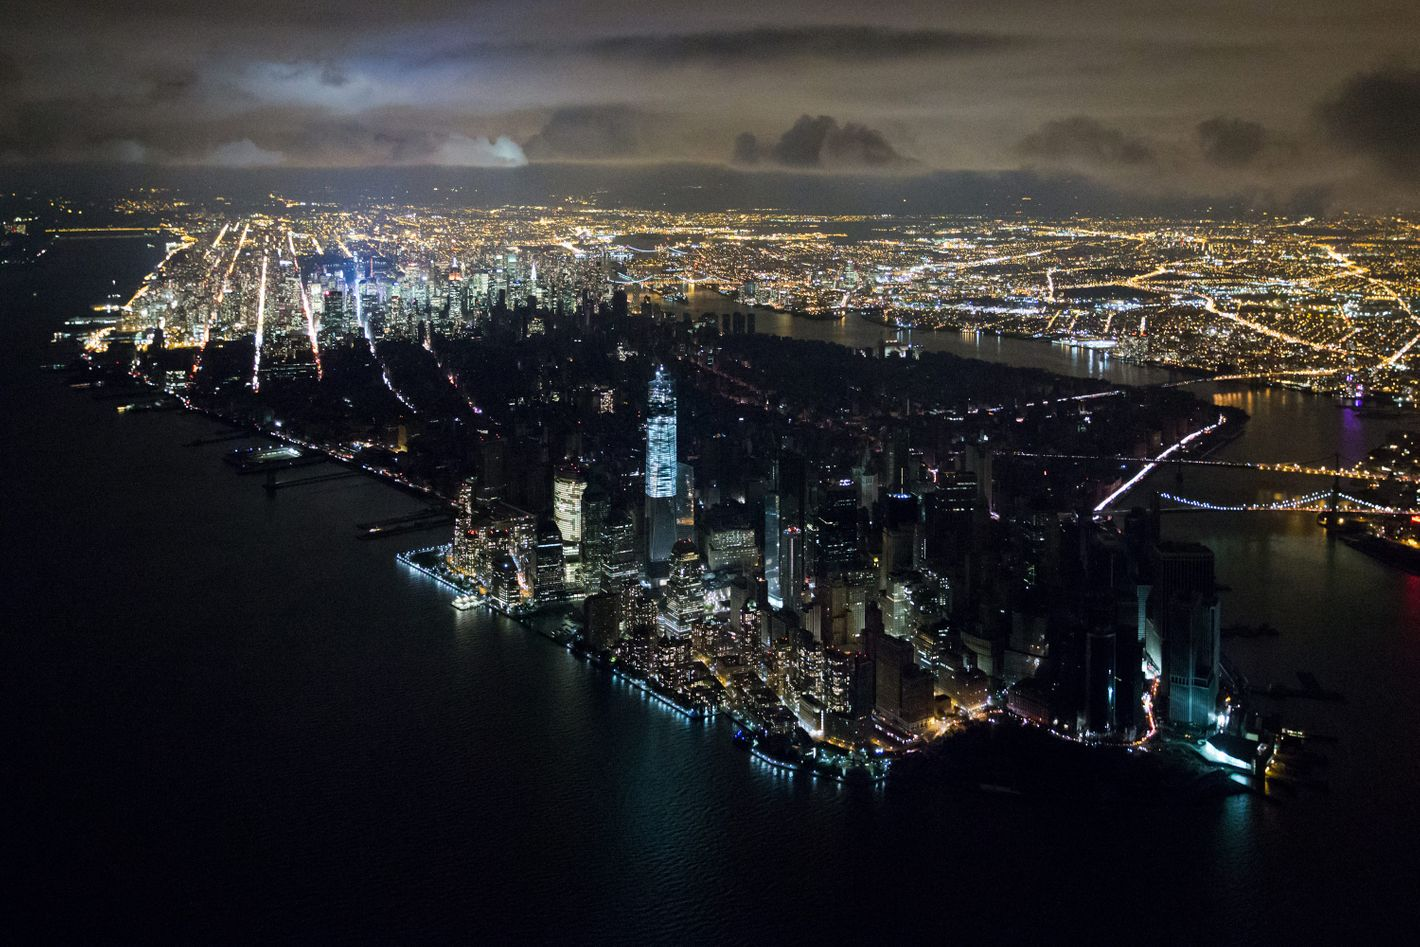 Photo showing Lower Manhattan without power after Hurricane Sandy.